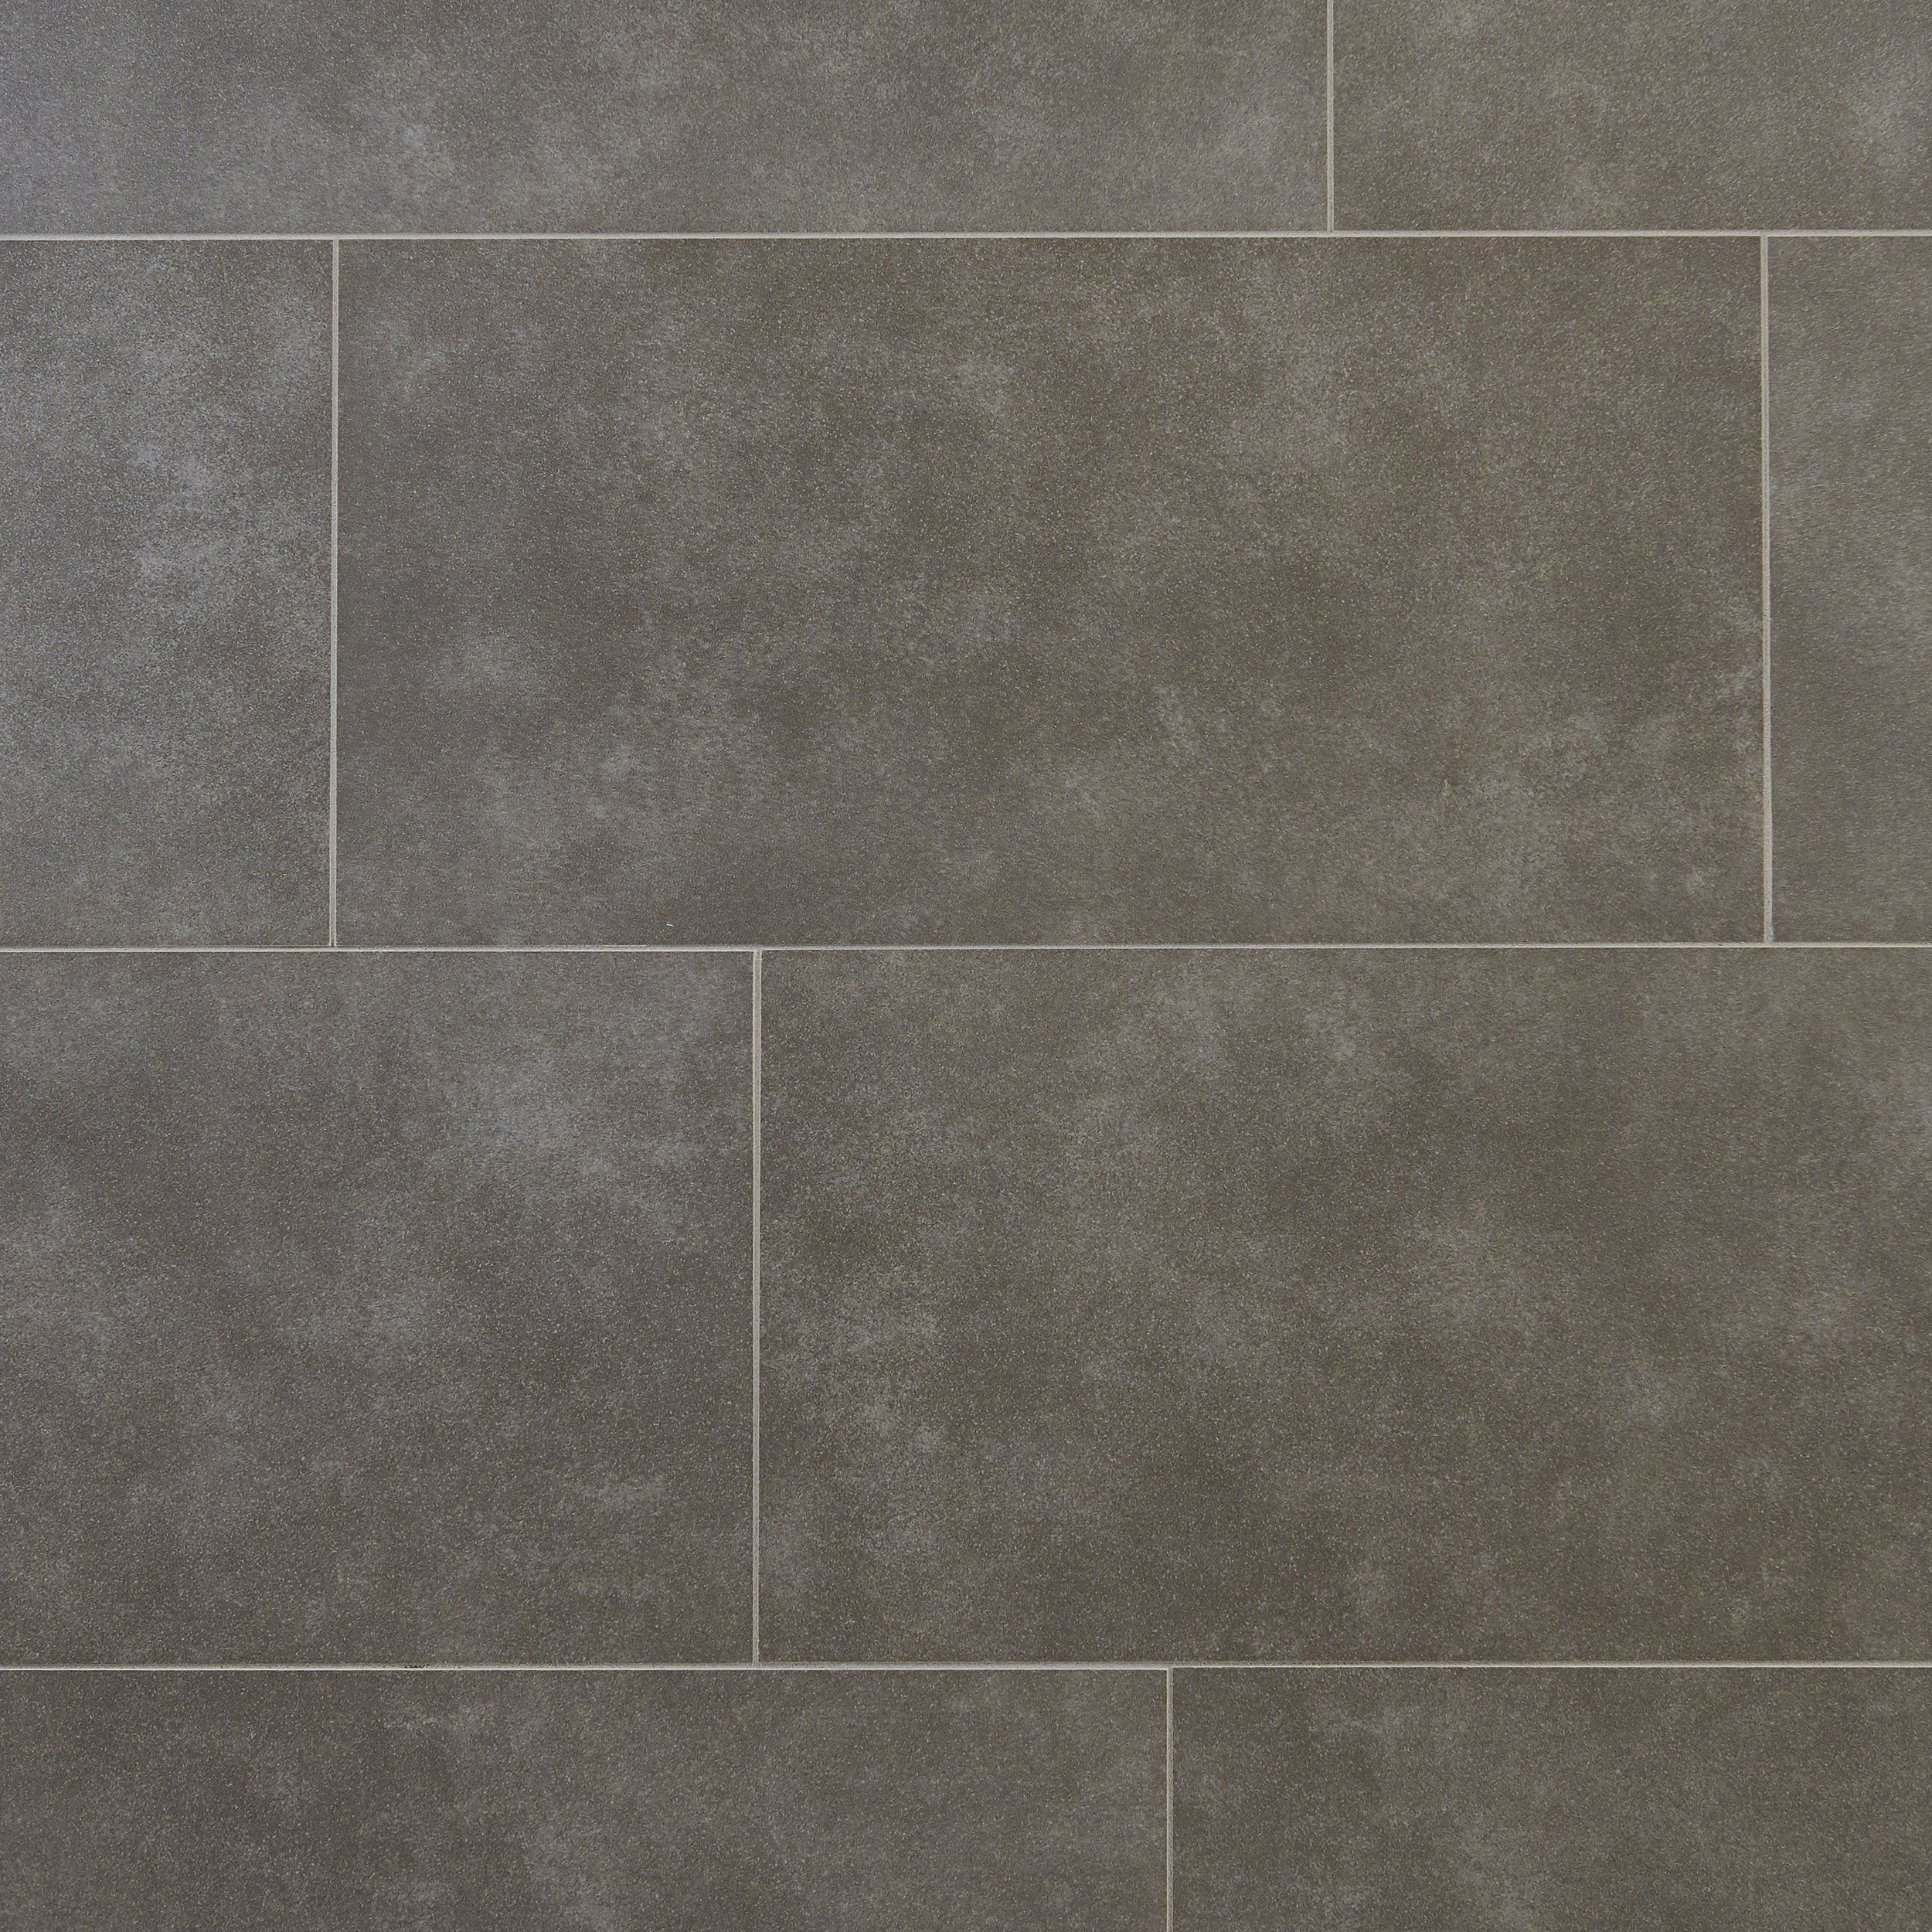 Concrete Gray Ceramic Tile Floor Decor Tile Layout Flooring Porcelain Tile